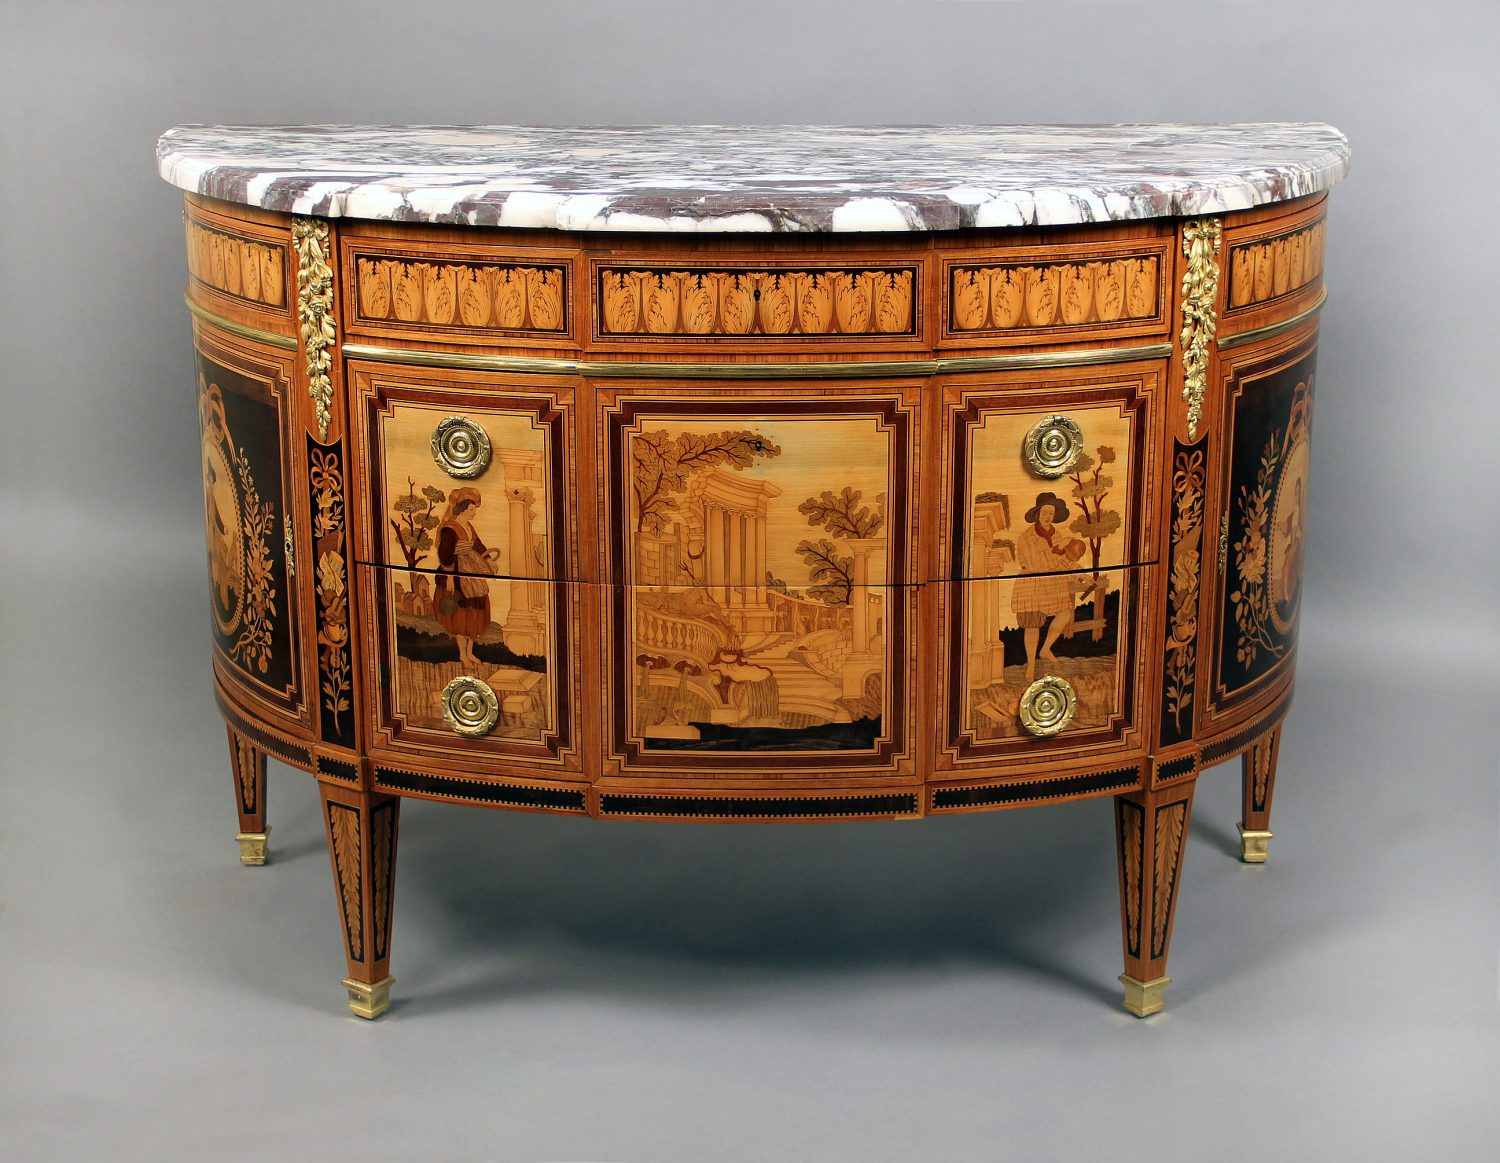 Louis XVI Style Inlaid Marquetry Commode